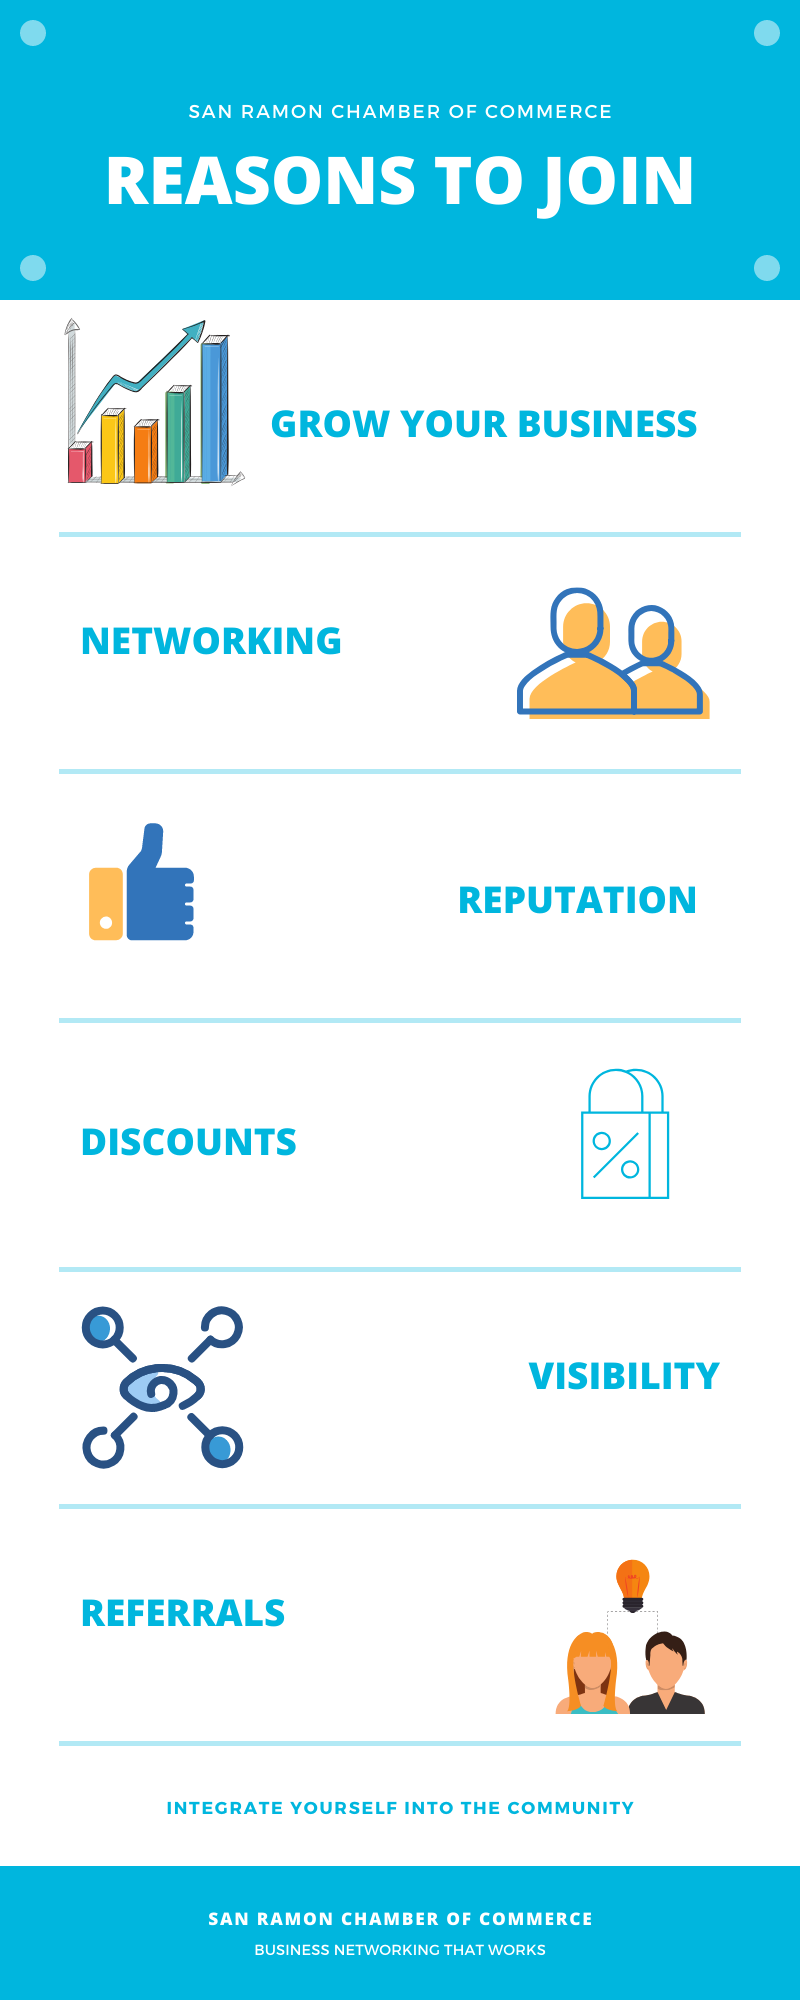 Reasons to join the San Ramon Chamber of Commerce